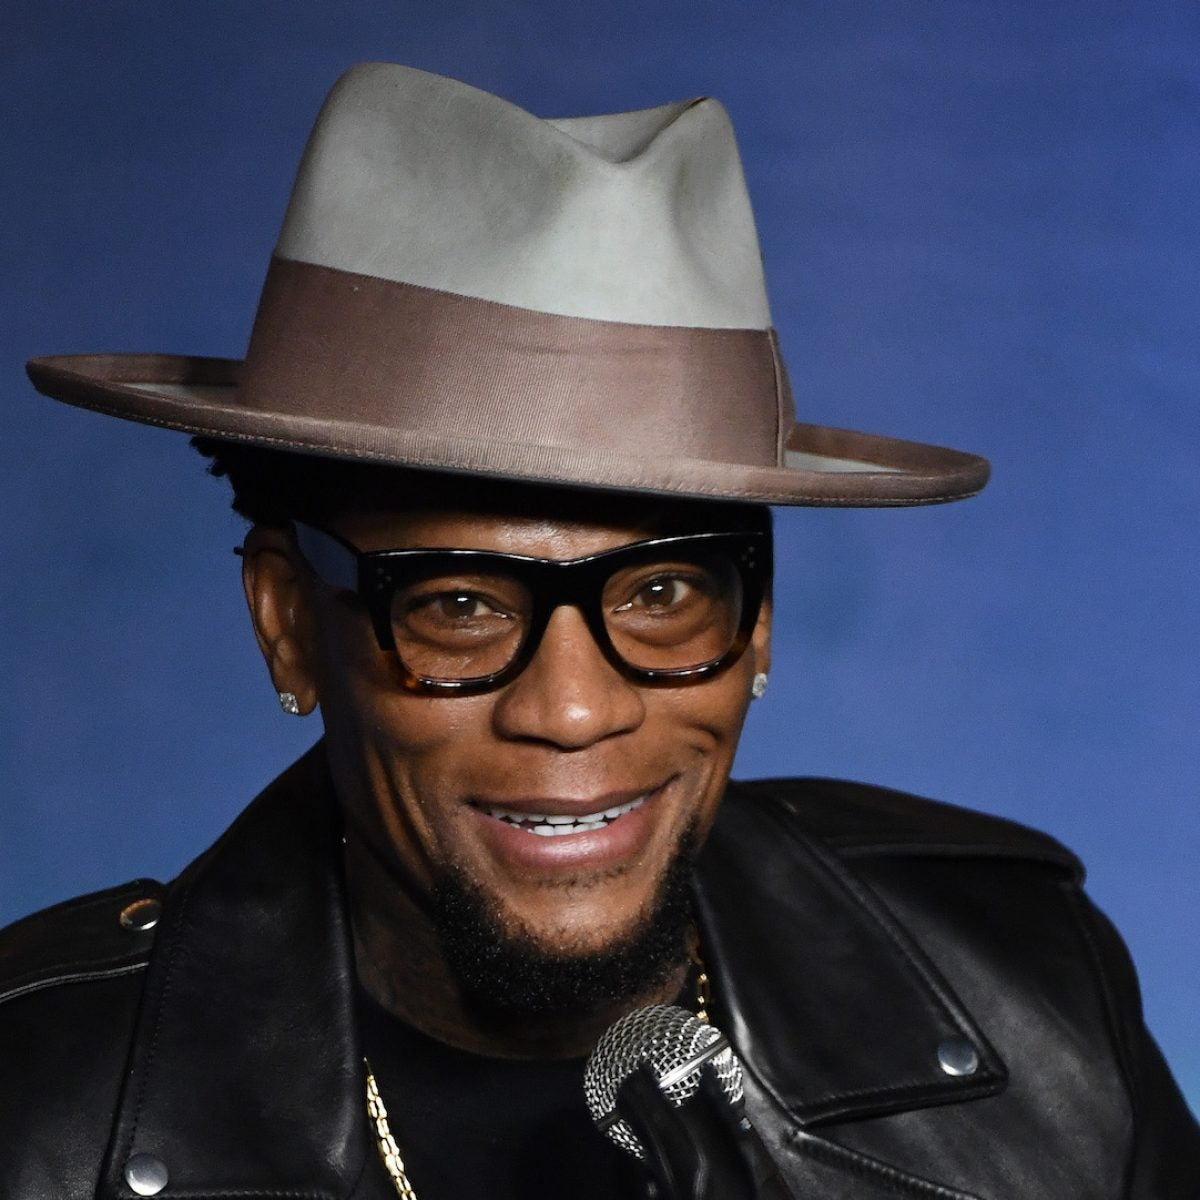 DL Hughley Tests Positive For COVID-19 After Passing Out On Stage